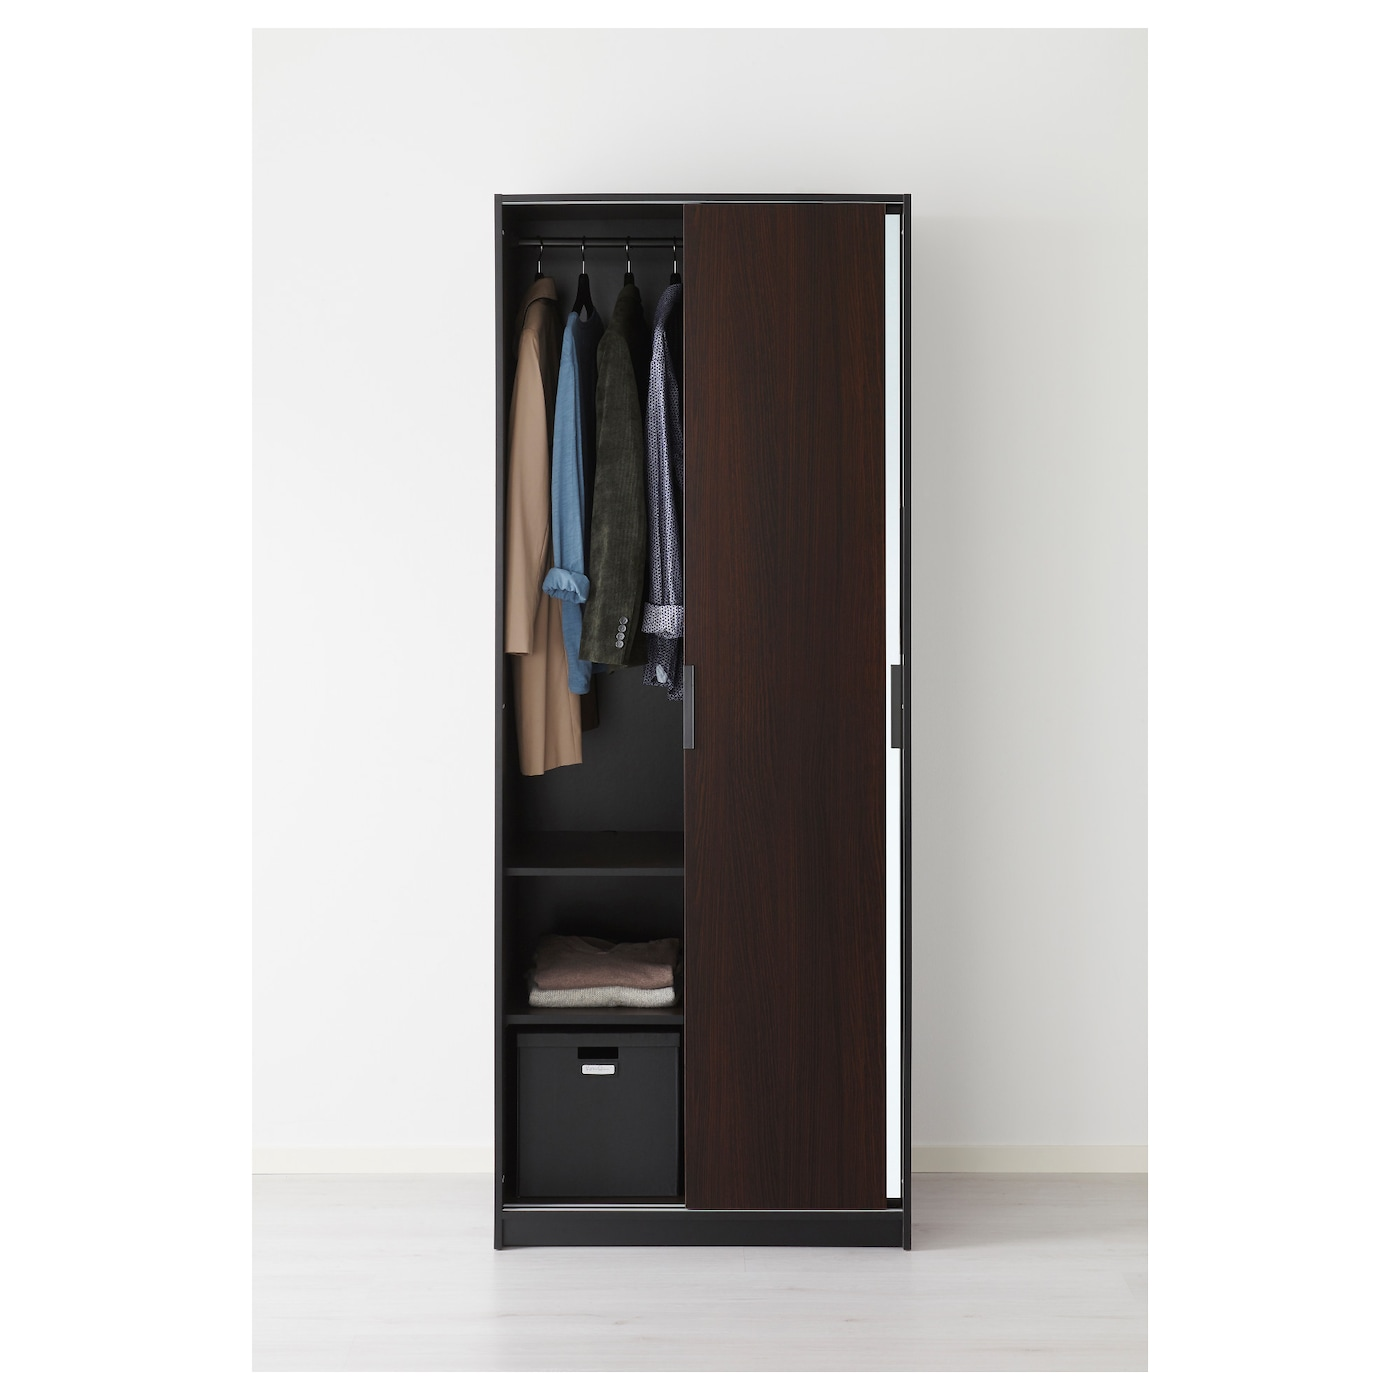 Trysil wardrobe dark brown mirror glass 79x61x202 cm ikea for Mirrors ikea usa